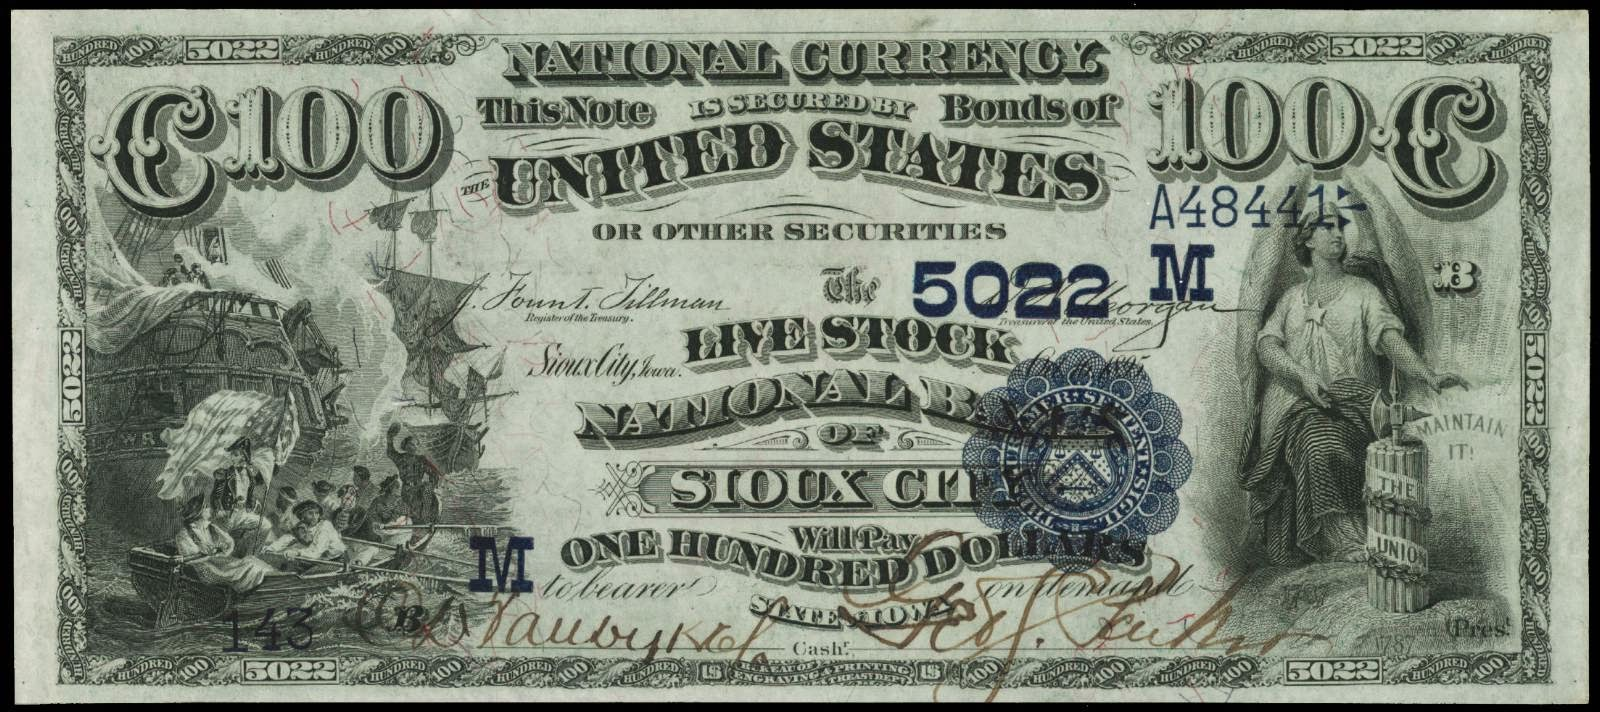 1882 100 Dollar National Currency Bank Note